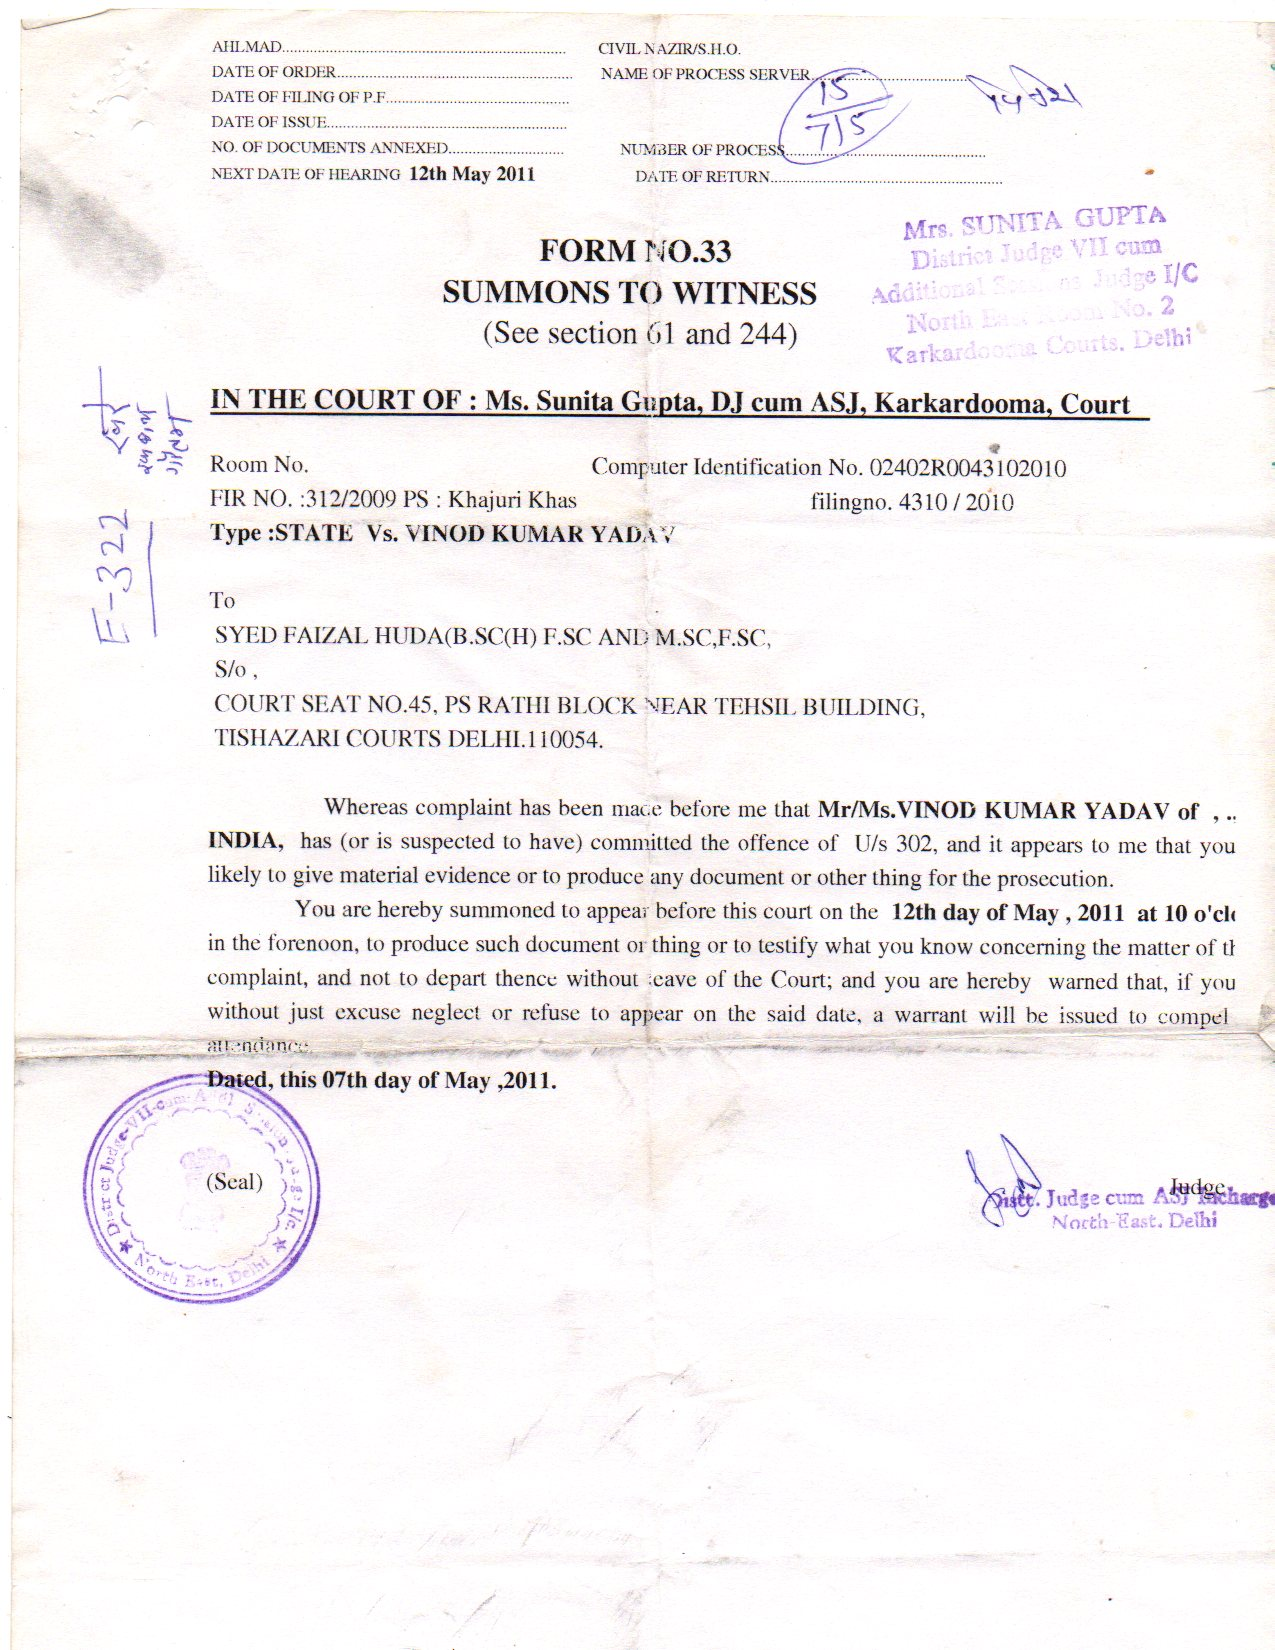 SUMMON FROM THE COURT OF MS. SUNITA GUPTA, KARKARDOOMA